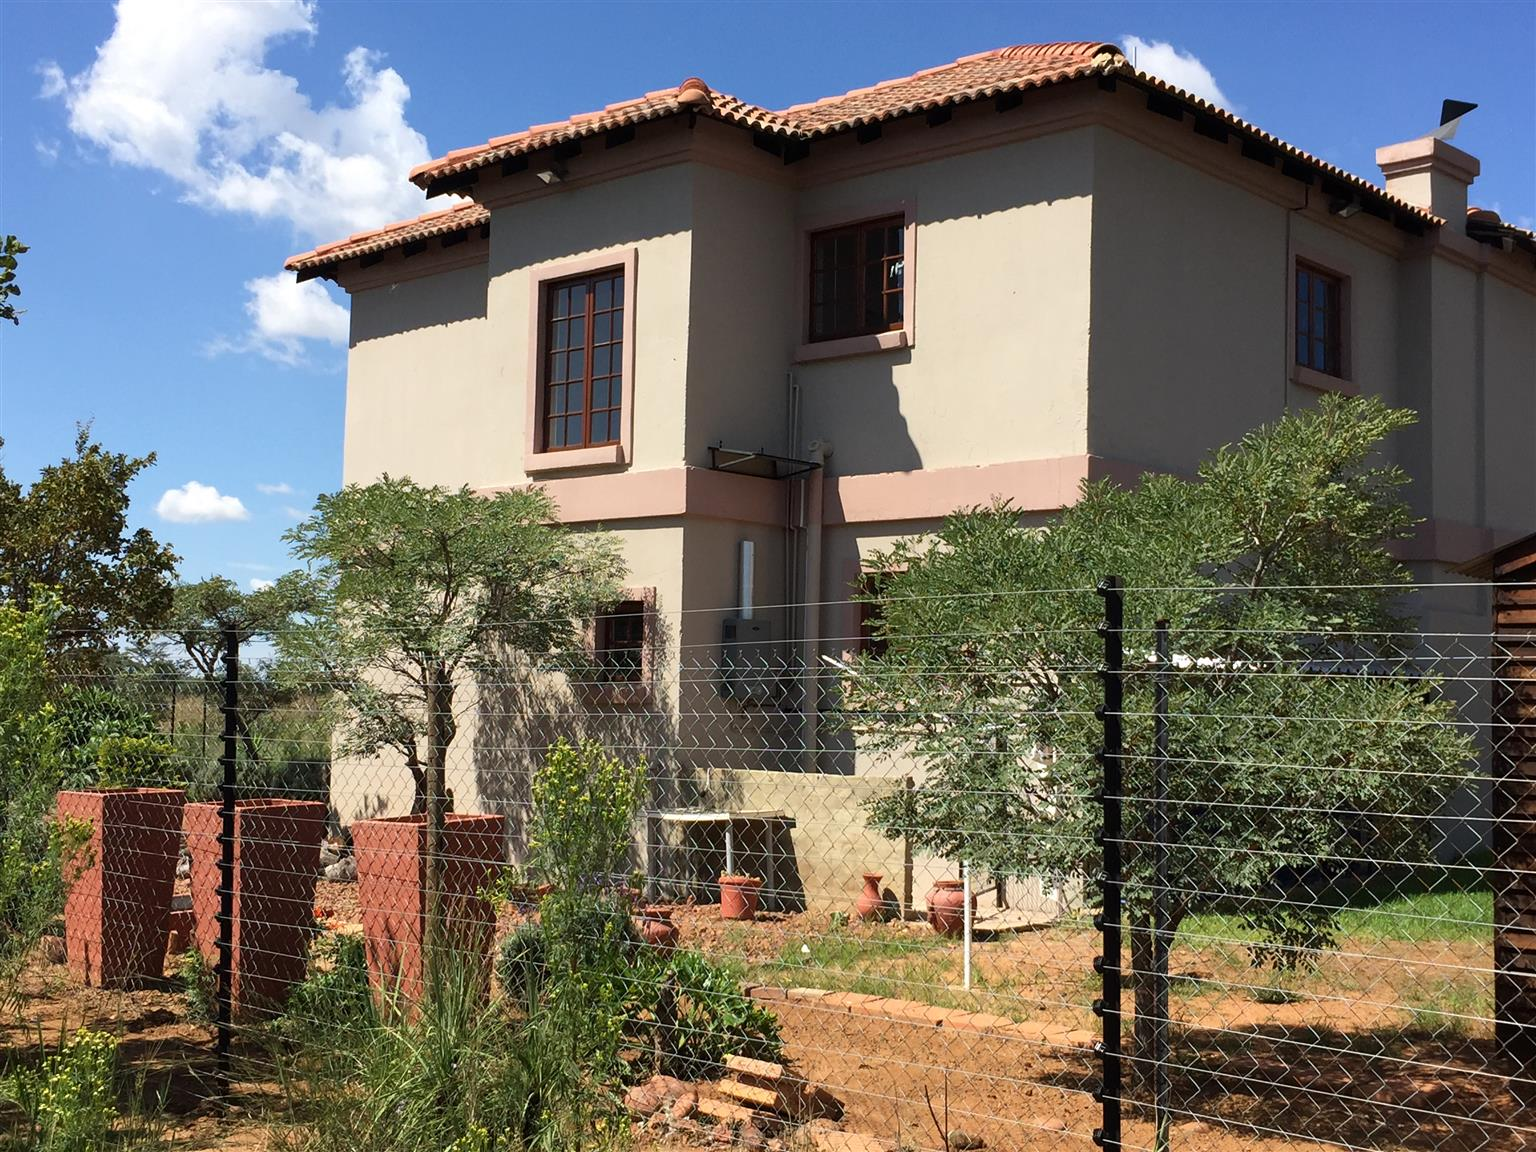 Tuscan family house - pay only R500 pm for water & lights